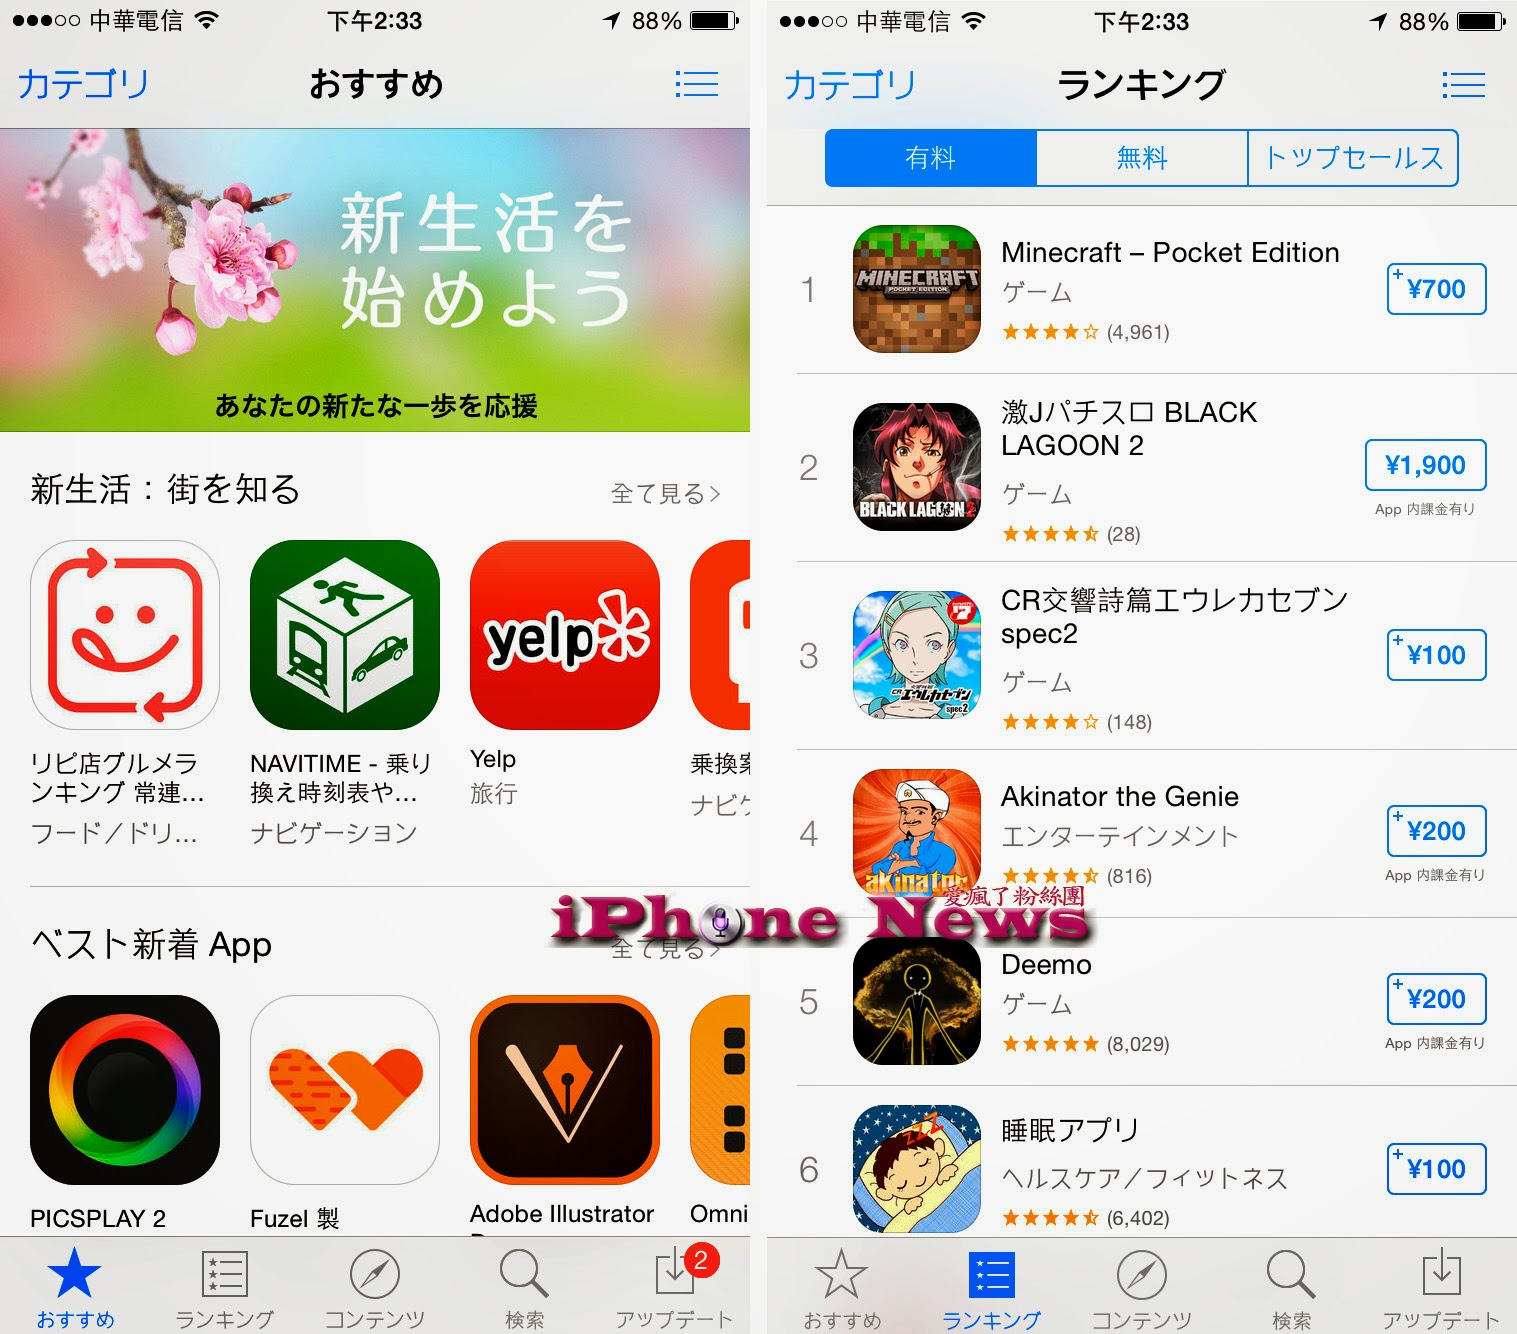 how to change language on qq iphone app